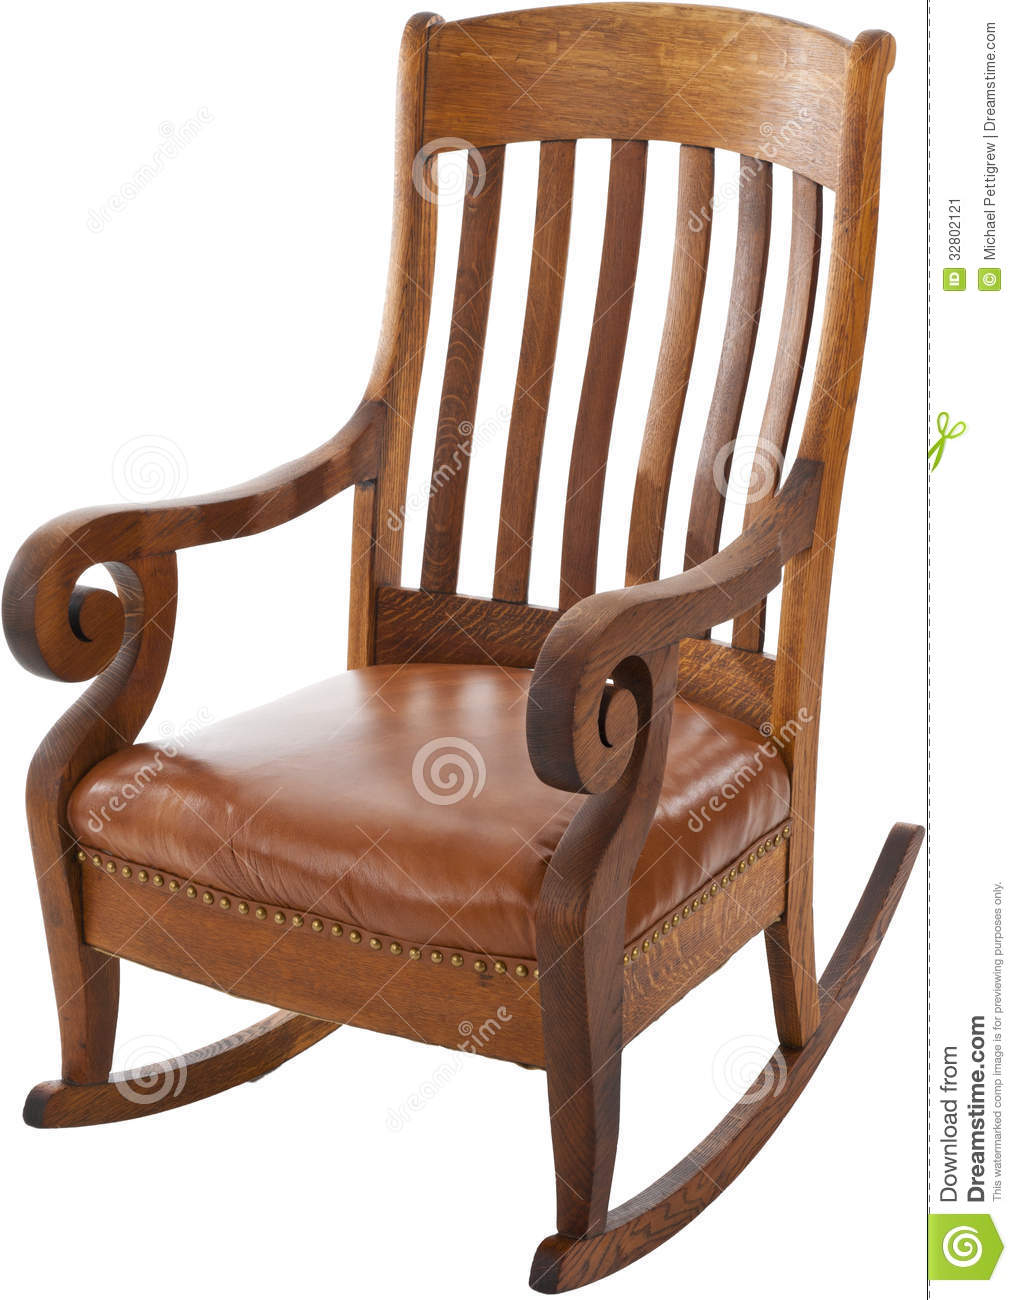 antique background chair isolated rocking ... - Antique Rocking Chair Stock Image - Image: 32802121